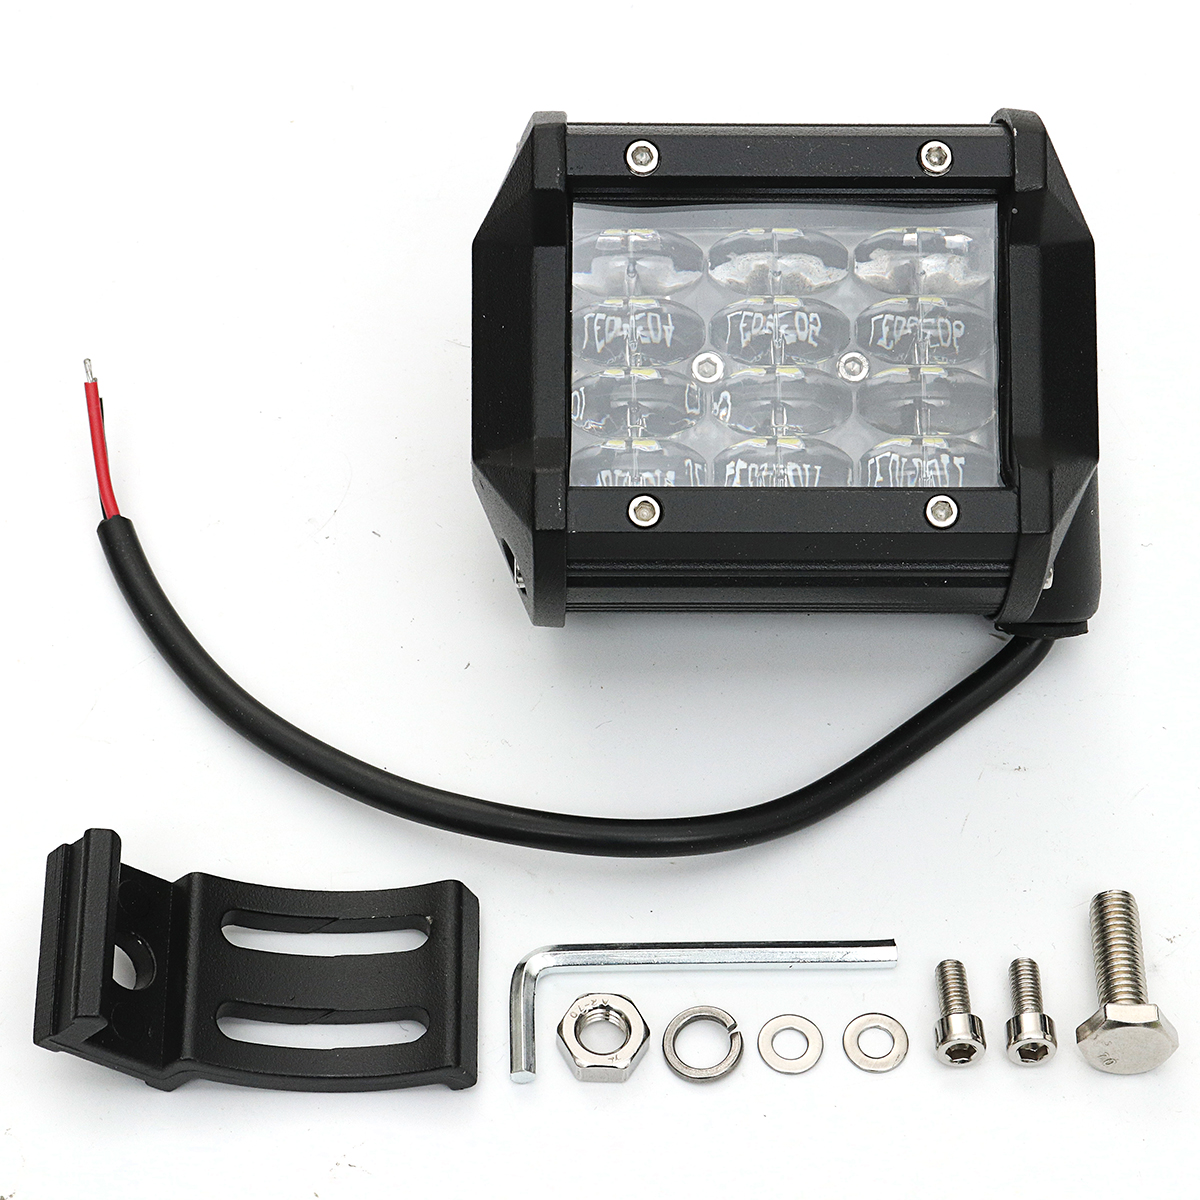 4inch 36W 6000K LED Work Light Bar Flood Spot Offroad Car Driving Lamp Truck 4 Rows